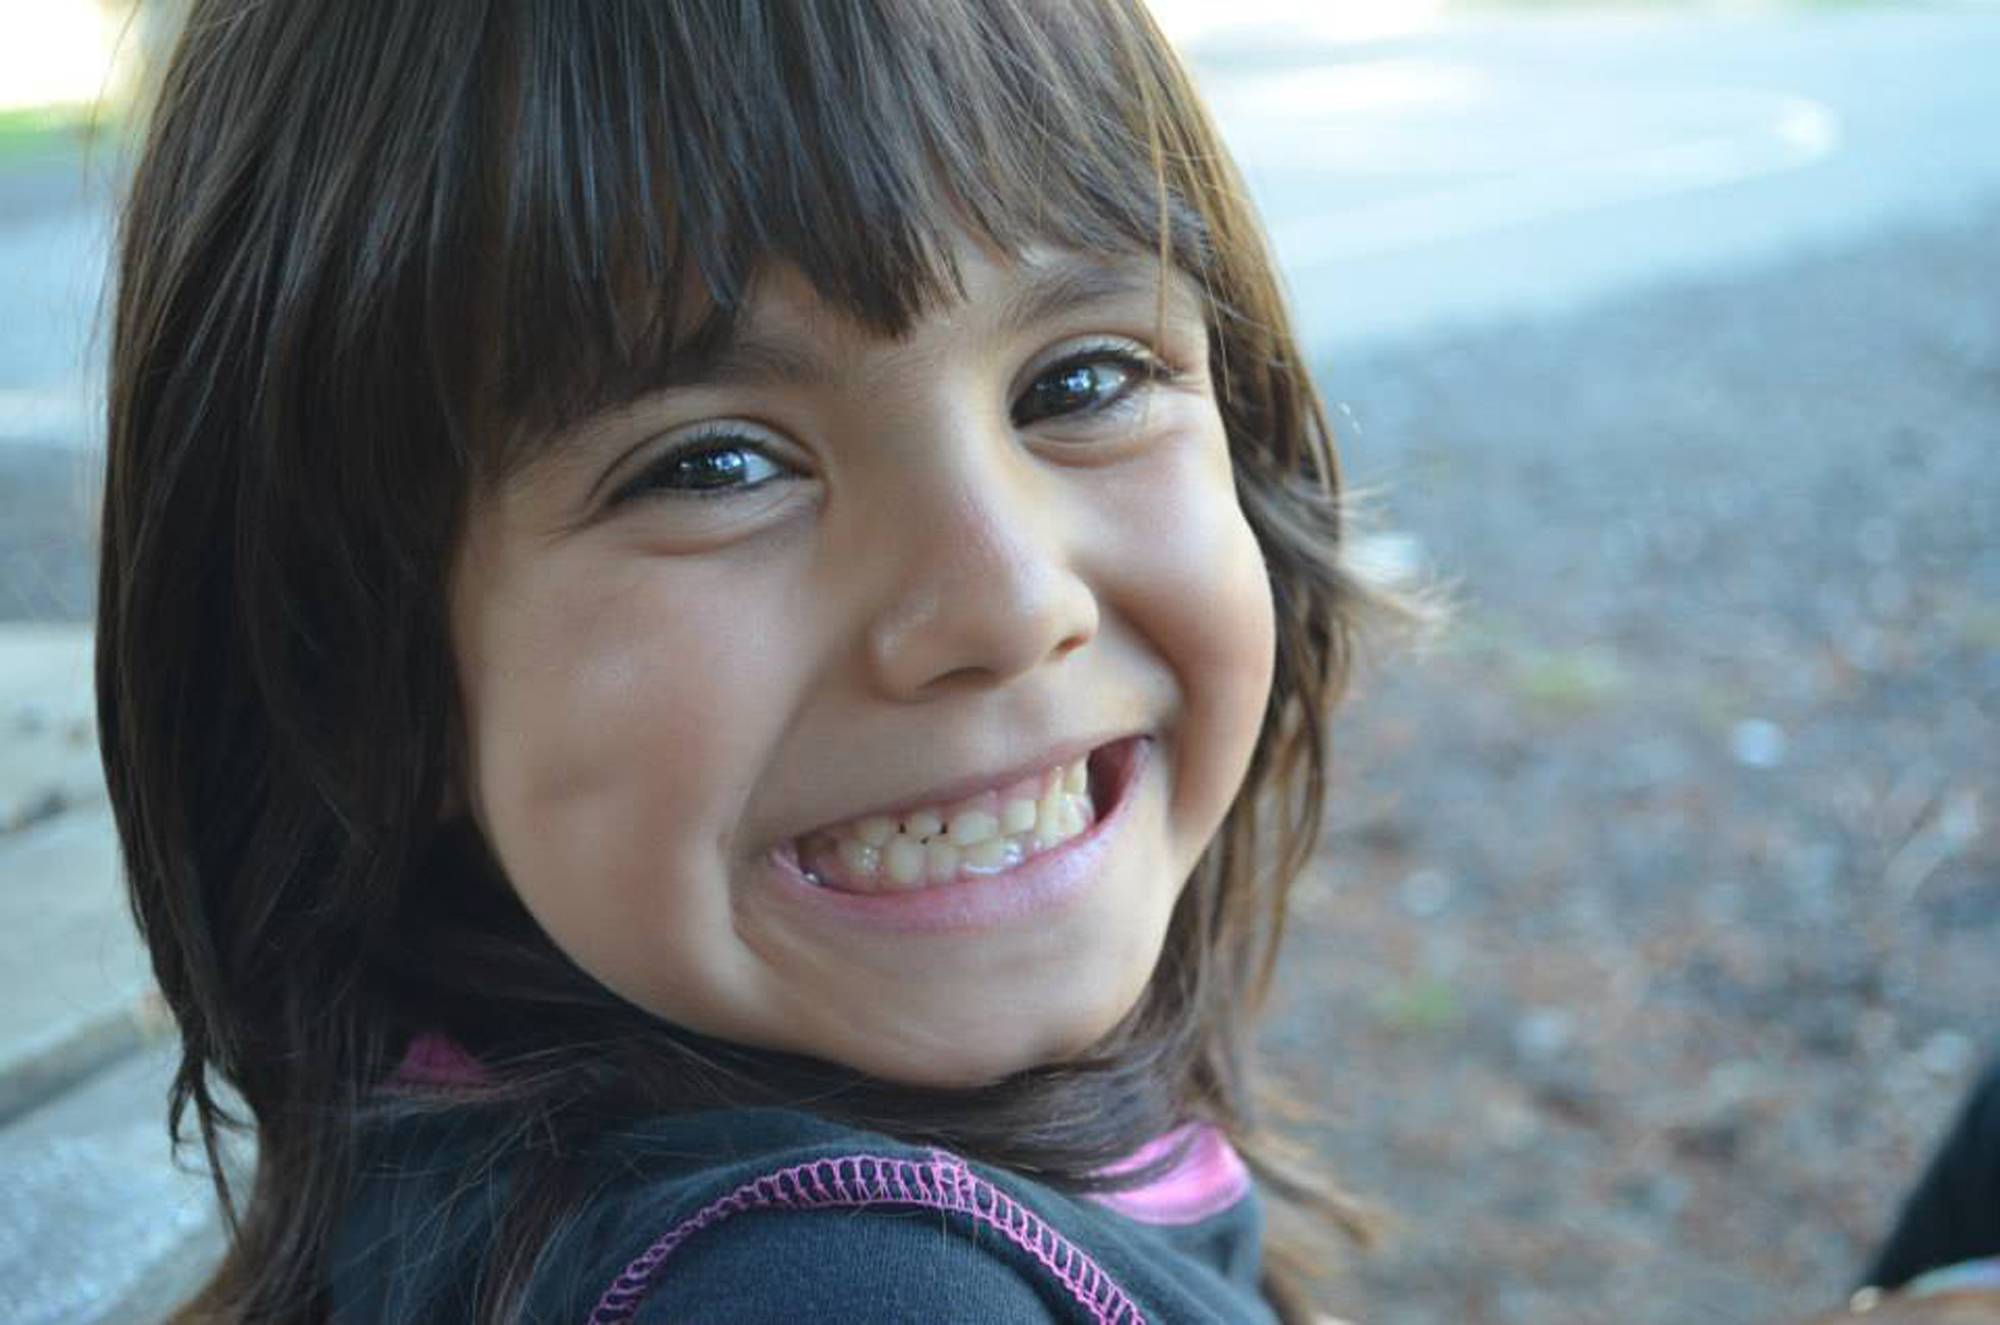 Jenise Paulette Wright. More than 100 officers from 10 law enforcement agencies are involved in the search for 6-year-old Jenise, who disappeared from her Washington state home over the weekend, sheriff's officials said Tuesday, Aug. 5, 2014.